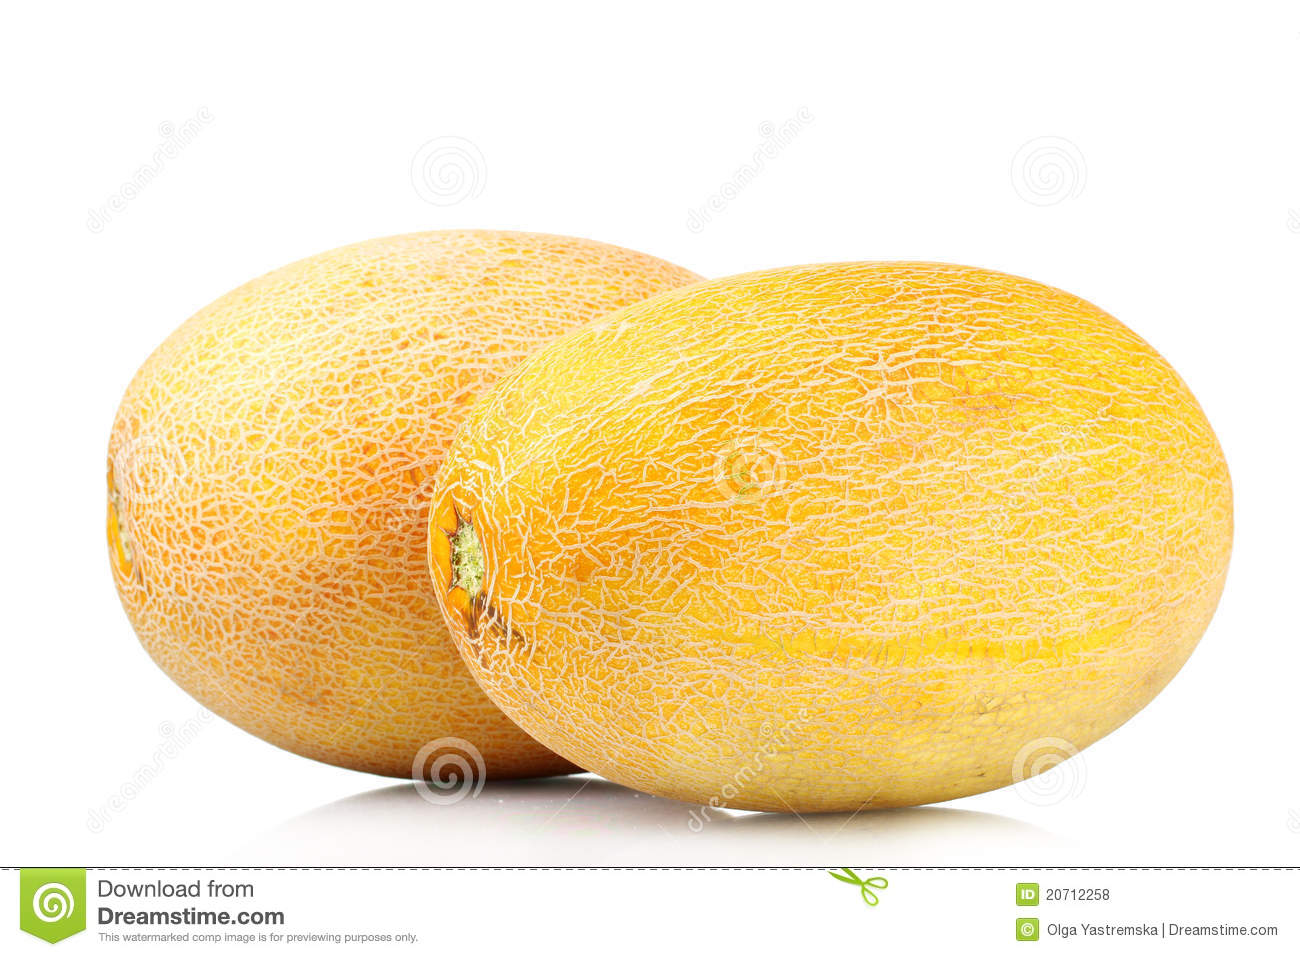 I was told to find a ripe honeydew, first rub the outside. If the outside proves resistant and waxy when pushing your finger over the outside in a rather hard manner, it is one test that proves a honeydew is ripe.